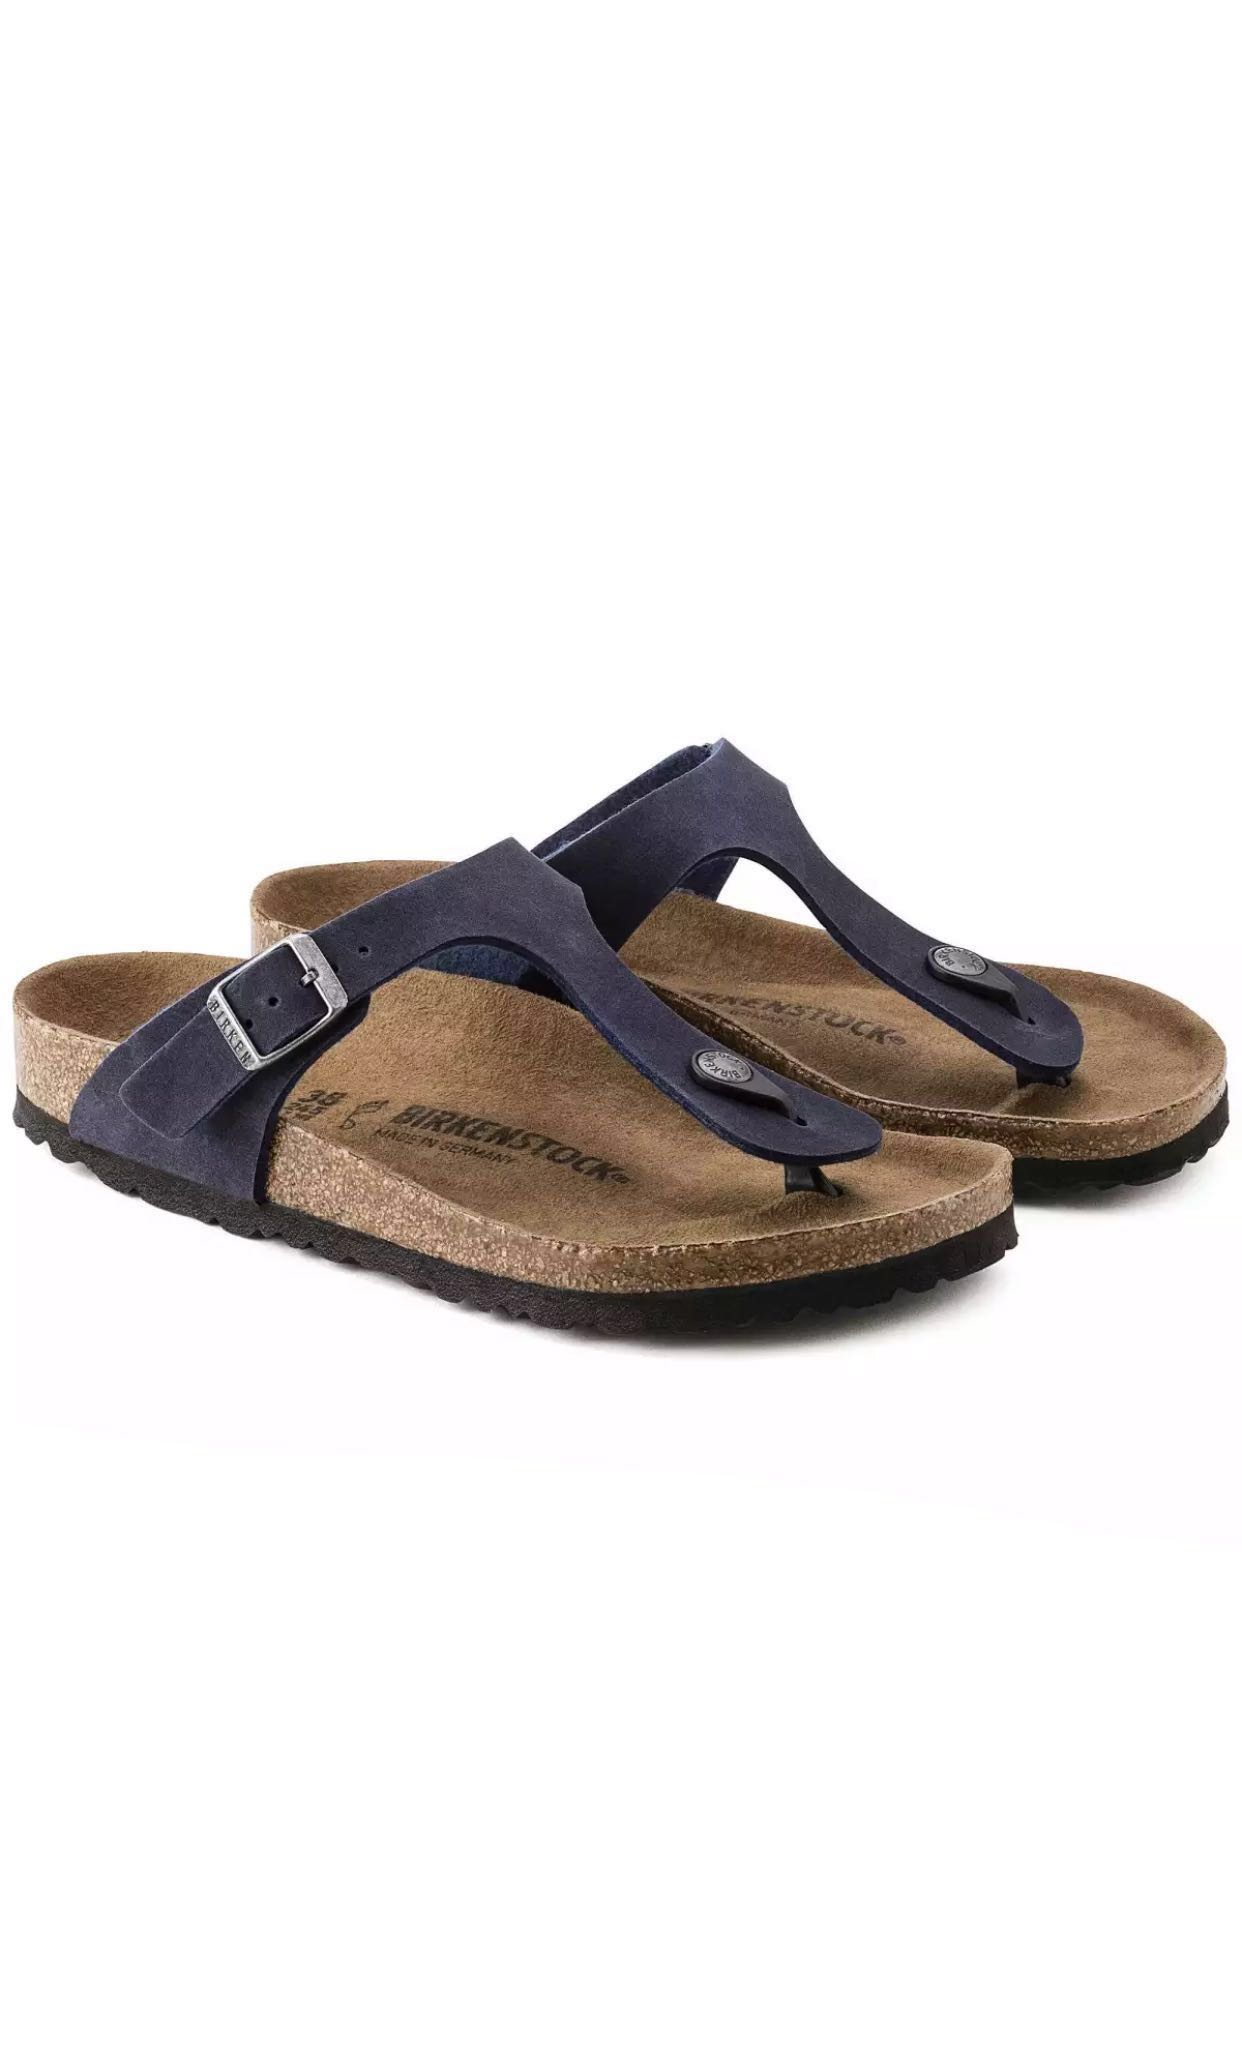 a0b10f8f9 Home · Men s Fashion · Footwear · Slippers   Sandals. photo photo photo  photo